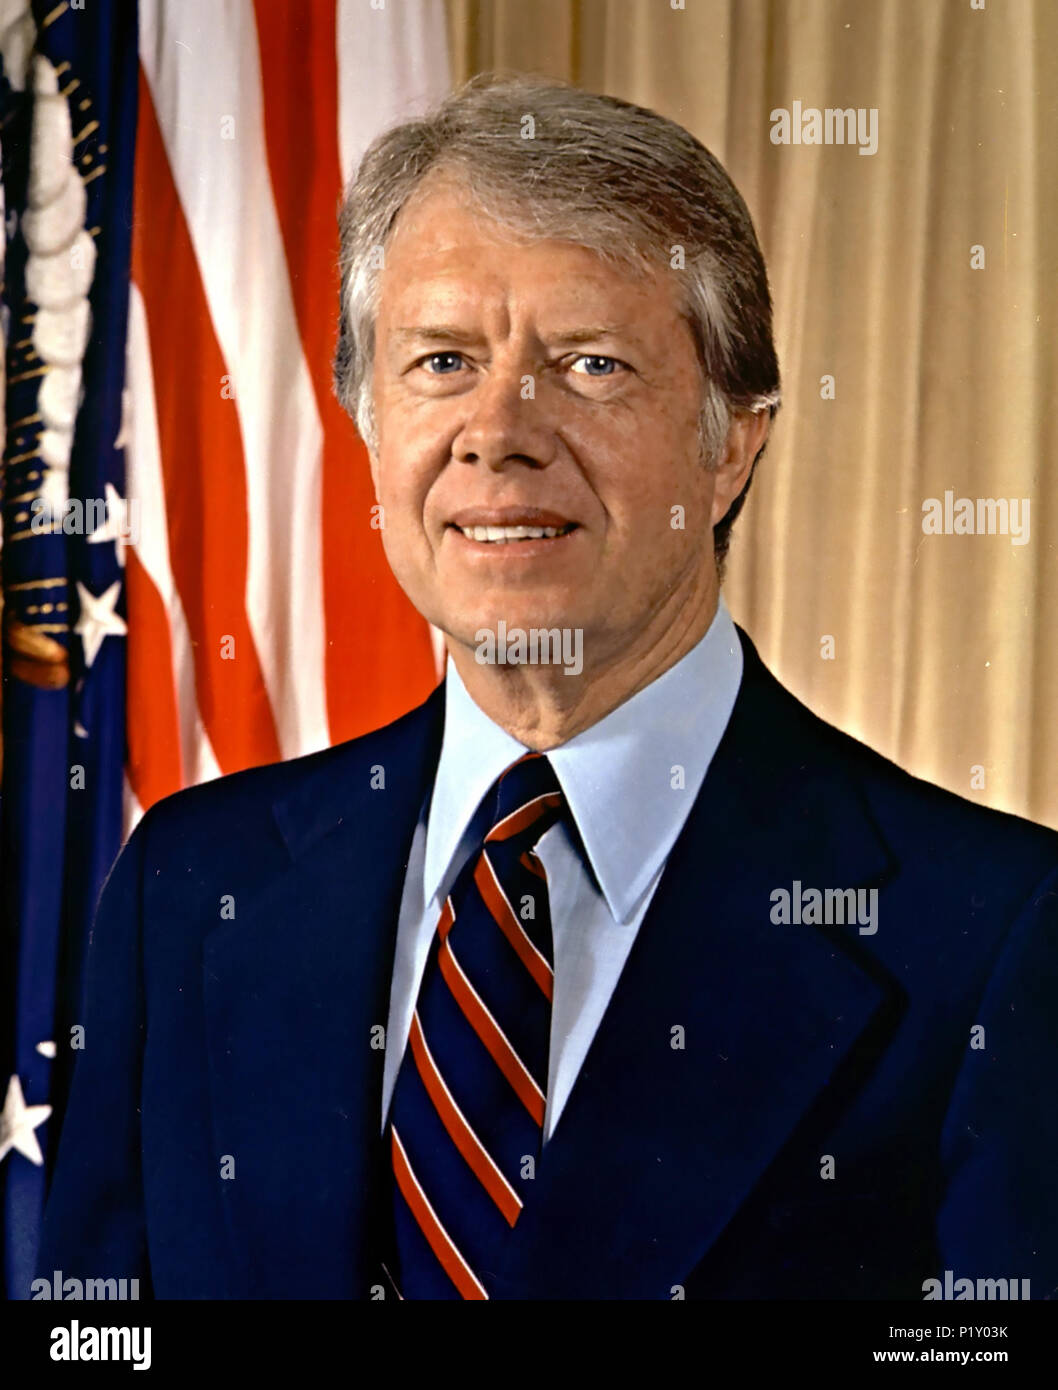 JIMMY CARTER as 39th President of the United States about 1977 - Stock Image